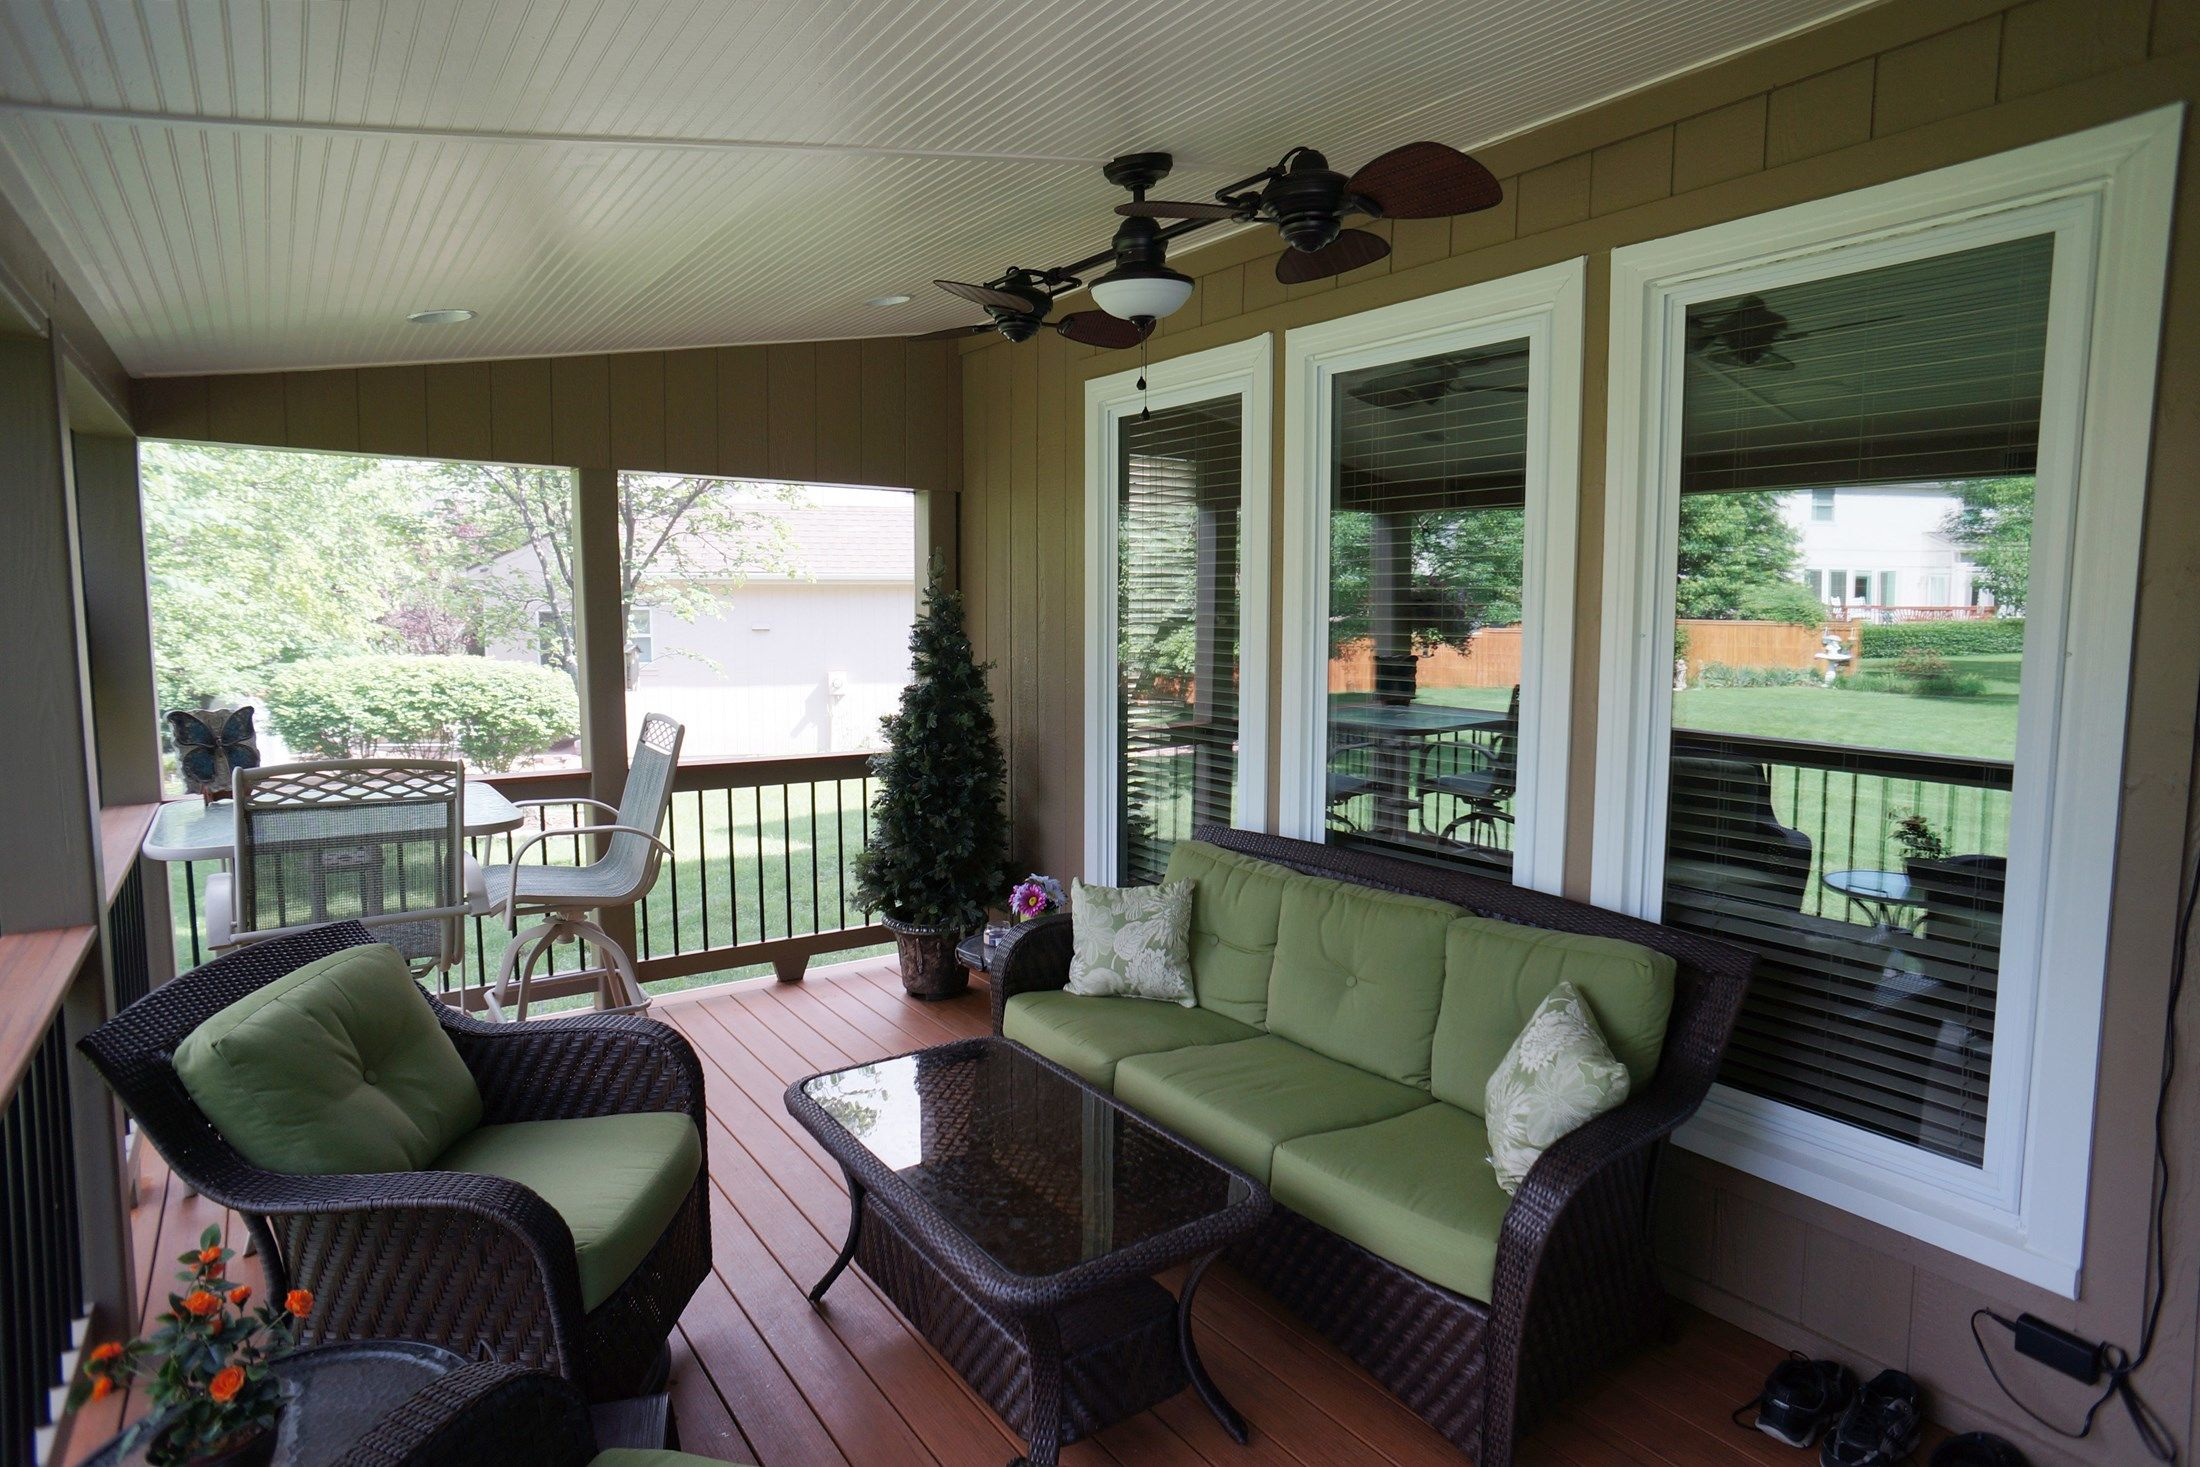 One-Pitch Roof Porch - Picture 5277